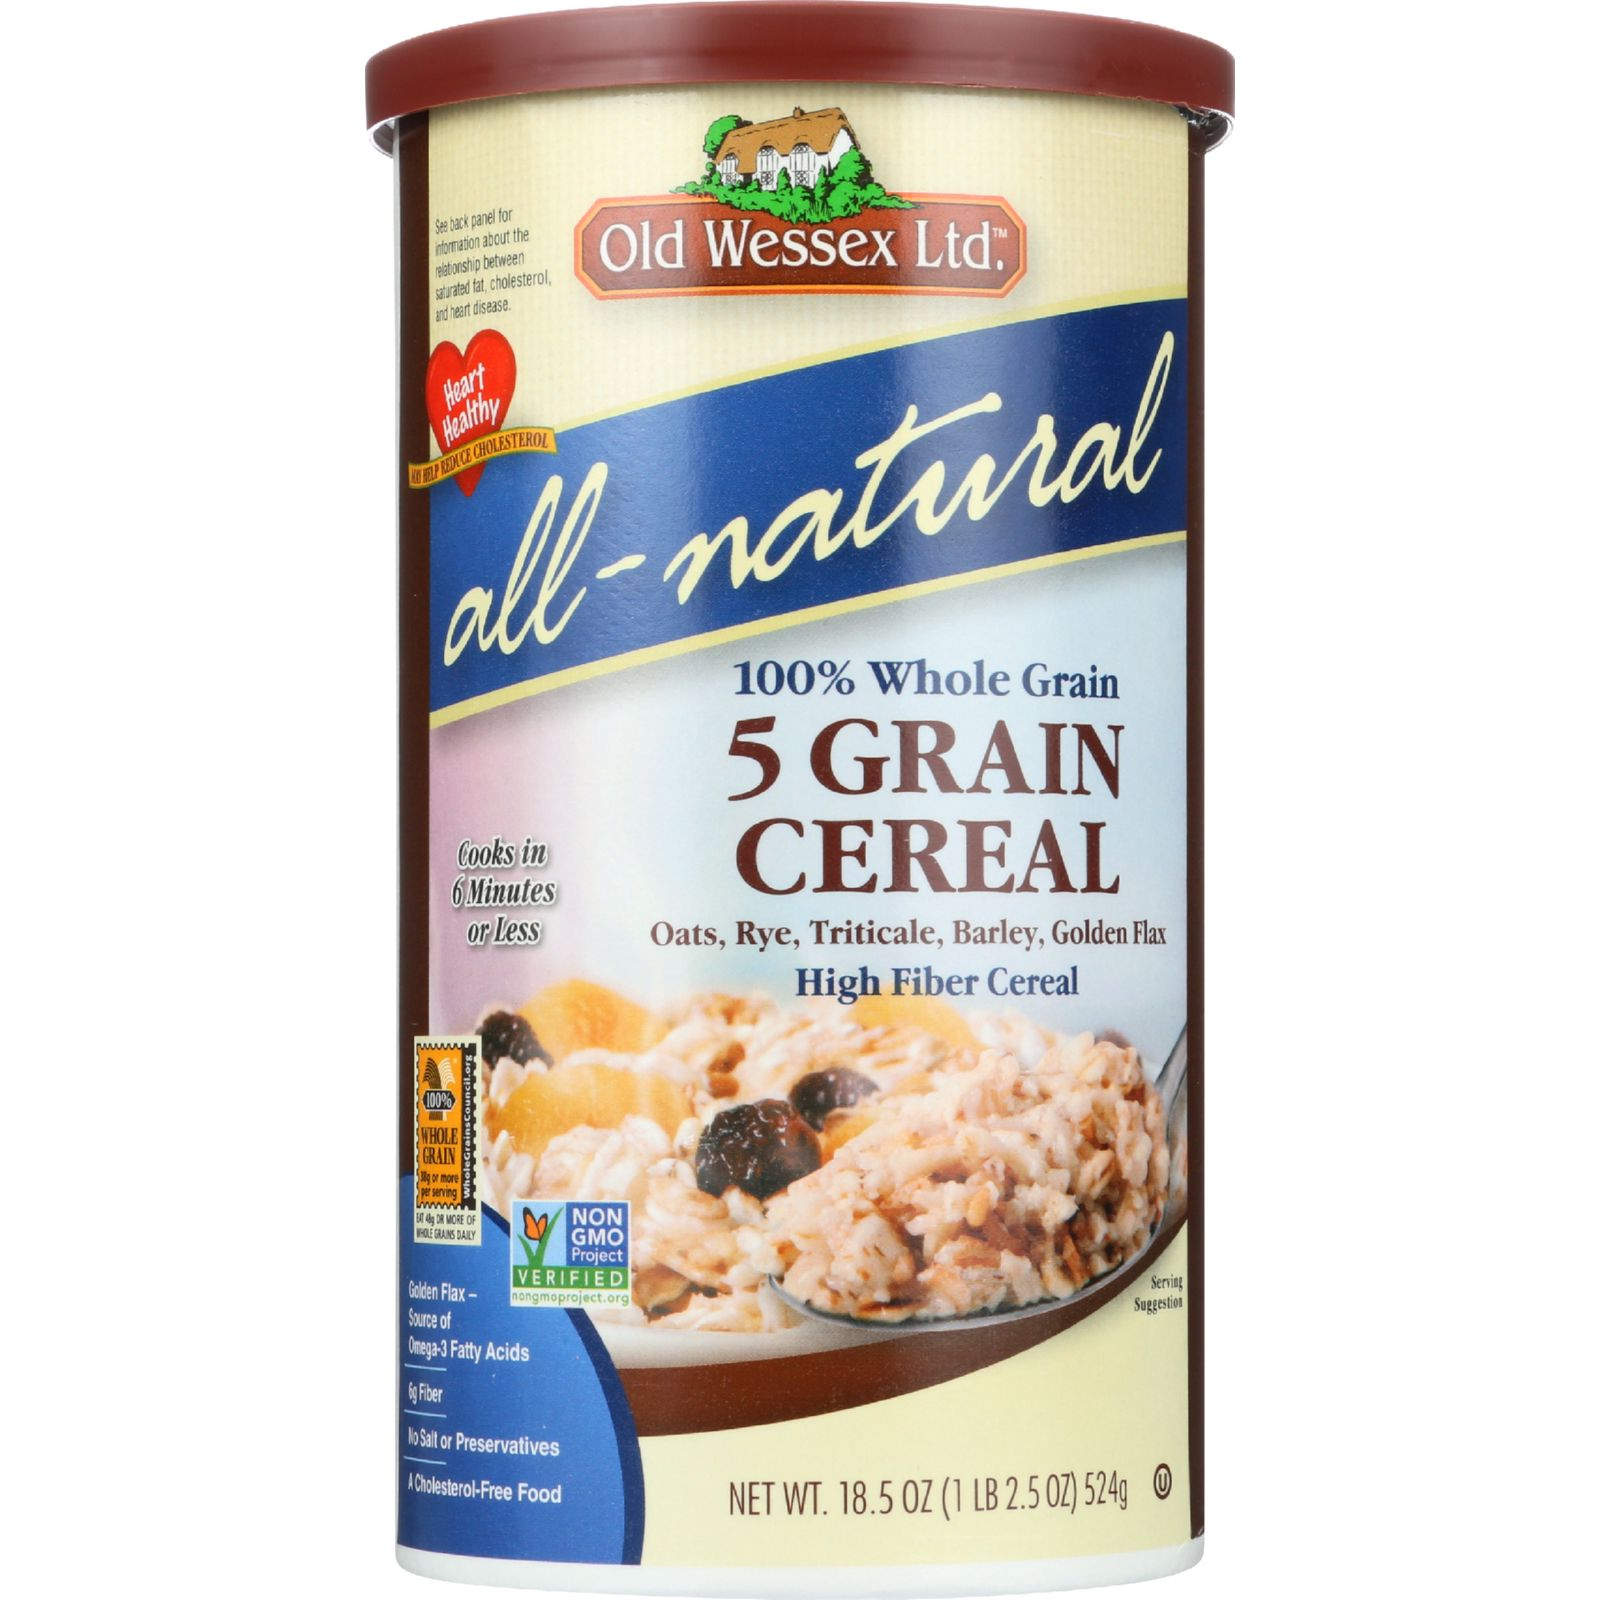 Old Wessex Cereal - 5 Grain - 18.5 Oz - Case Of 12